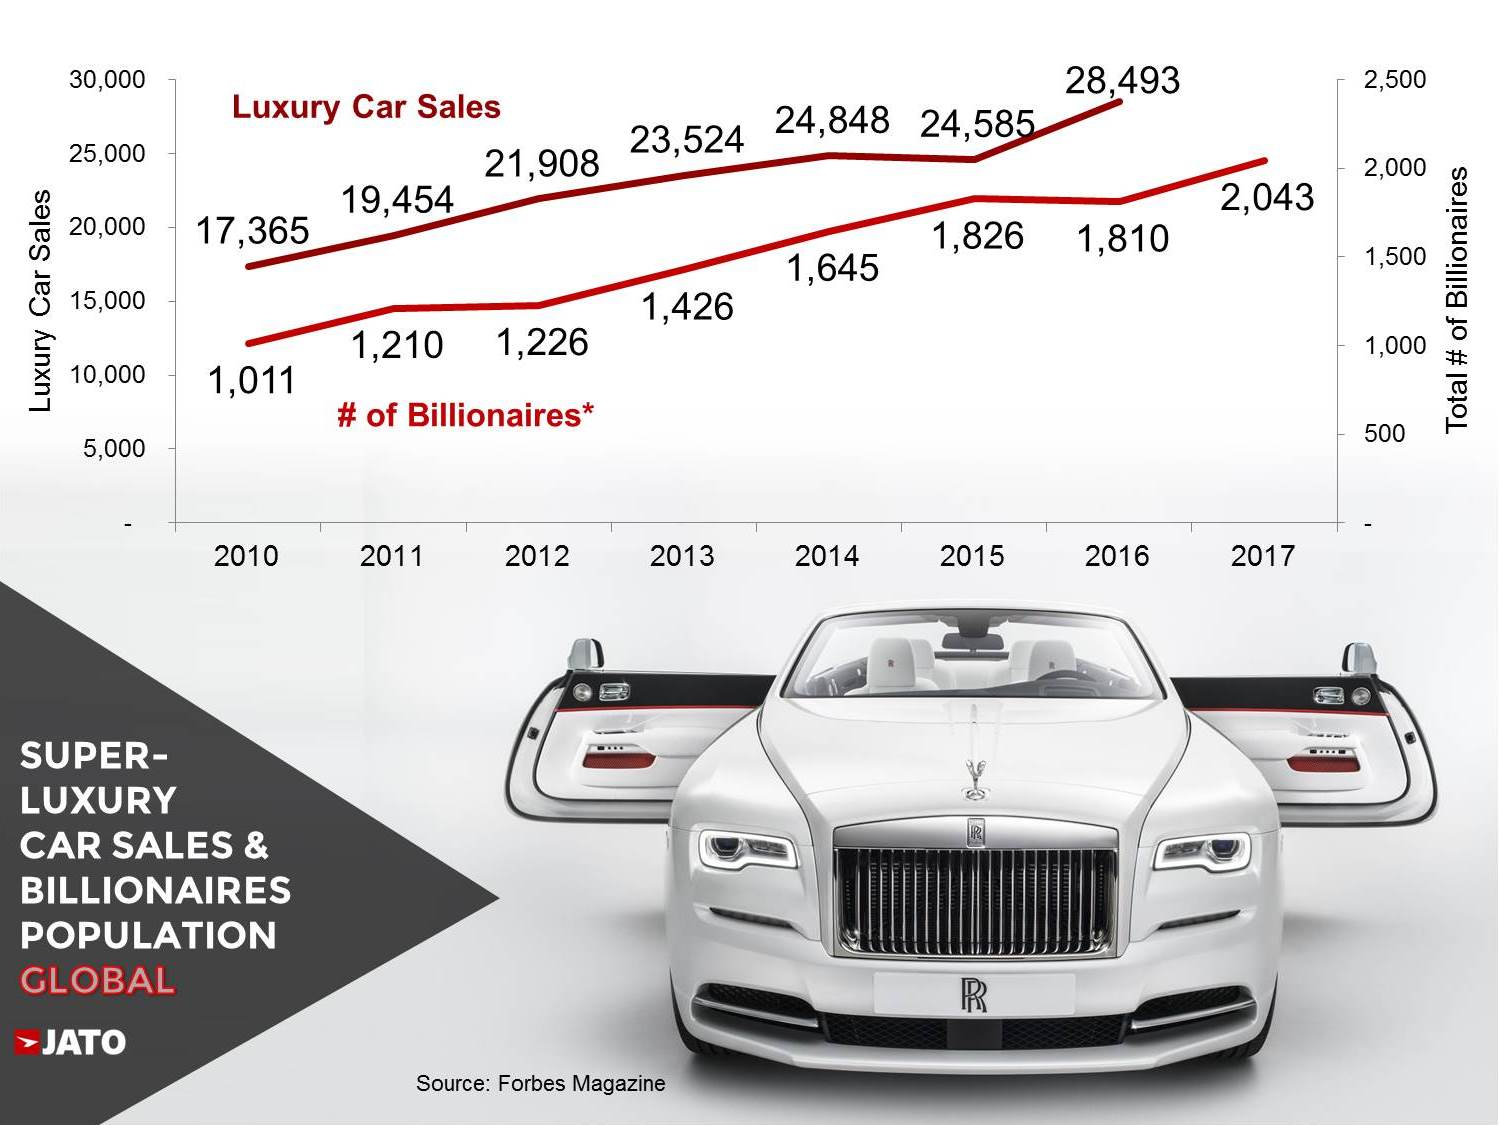 luxury car wholesalers  Super luxury car sales posted a double-digit growth as world ...